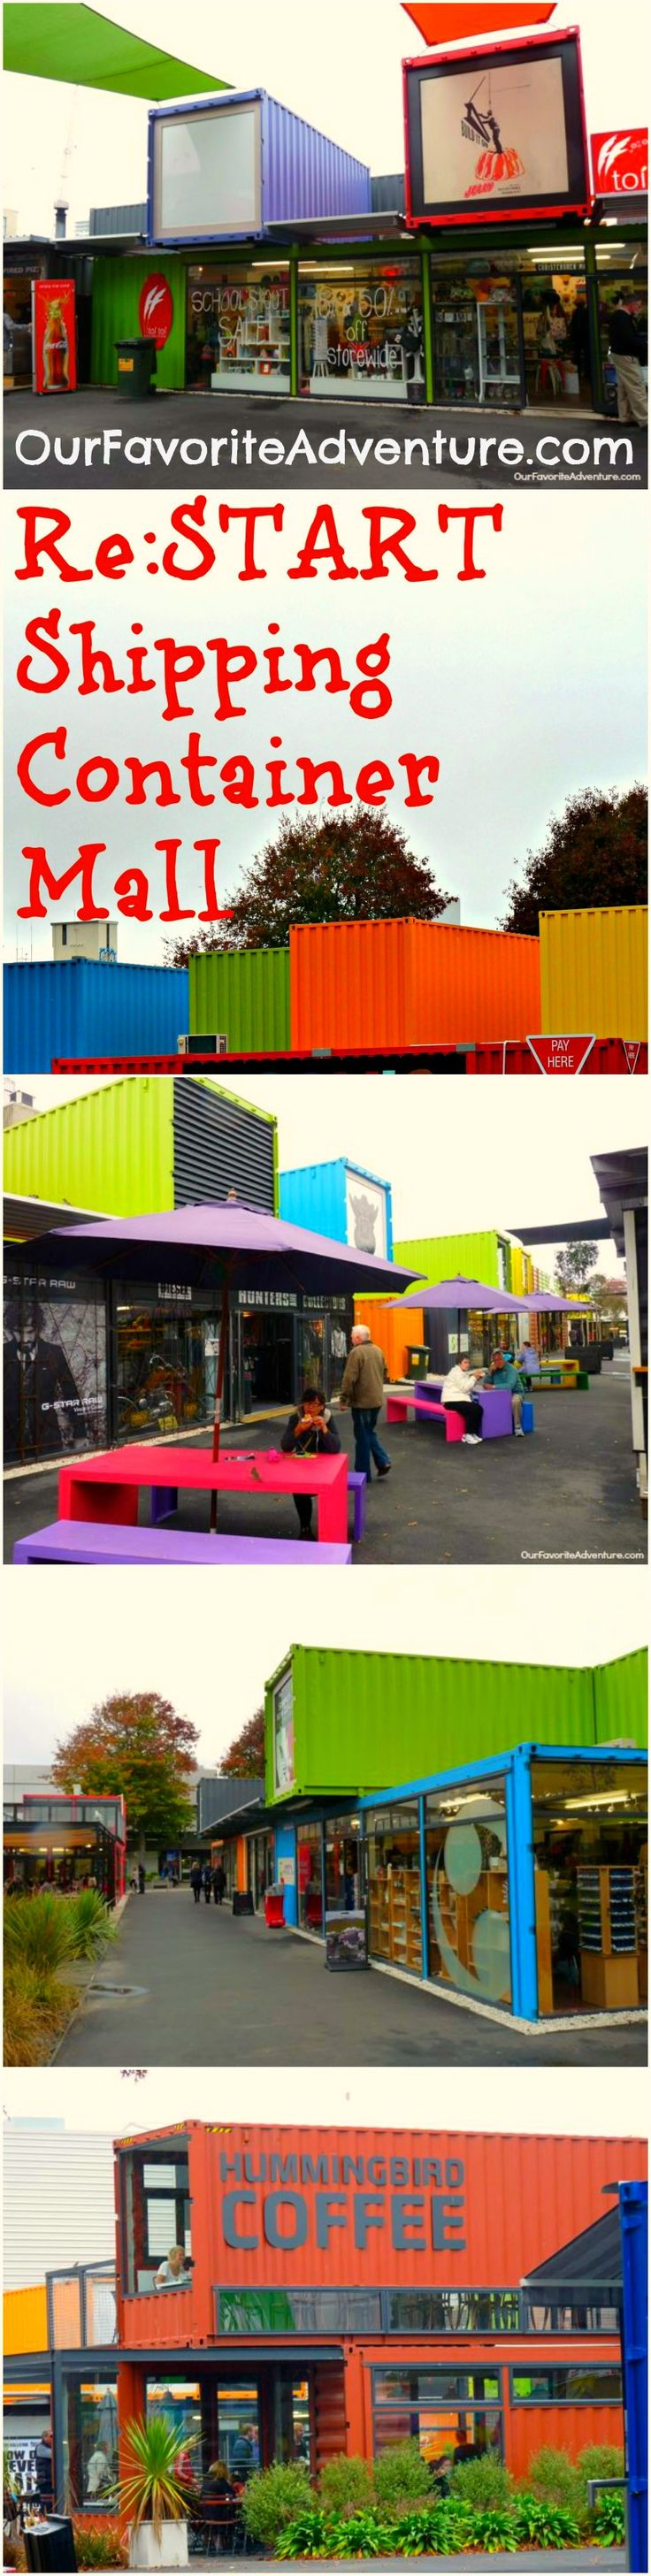 Re:Start Shipping Container Mall in Christchurch, New Zealand! #shippingcontainters